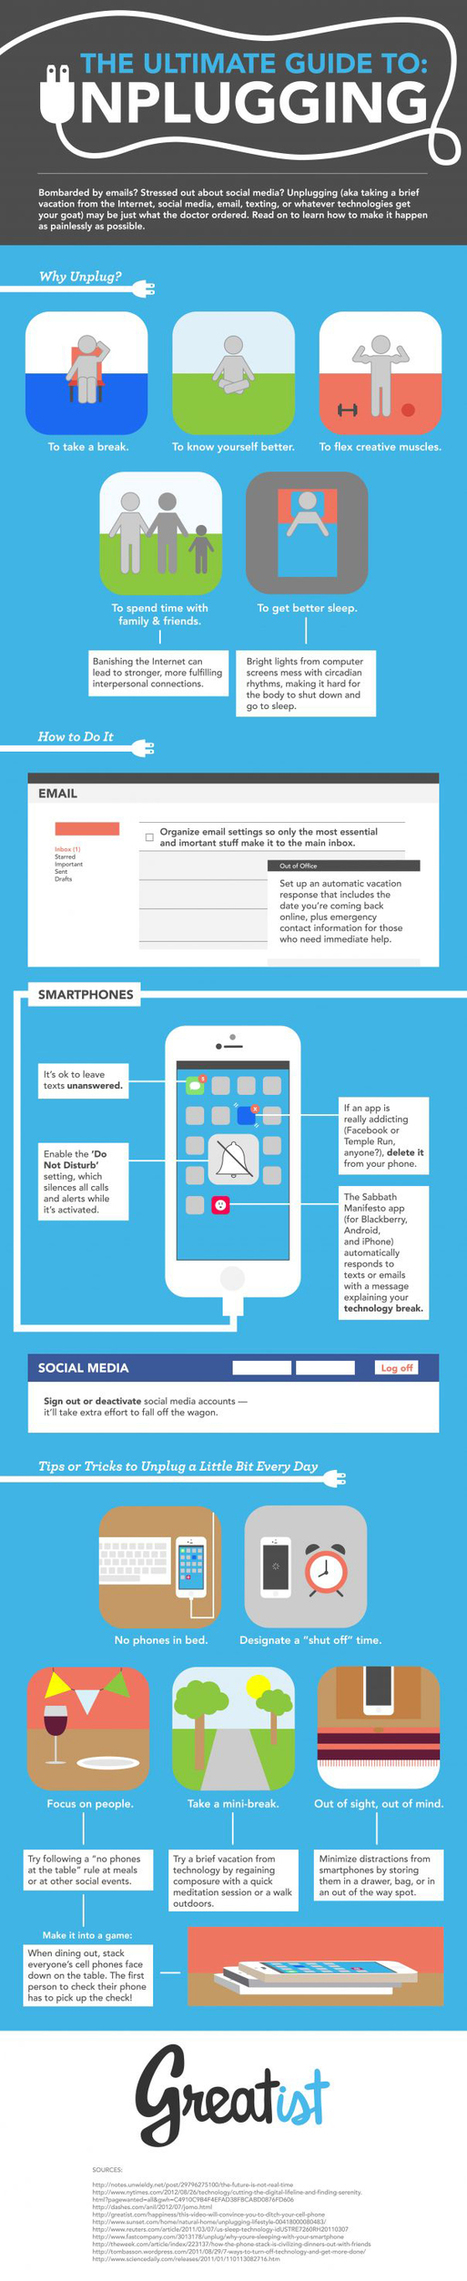 You Asked For It - The ultimate guide to unplugging [infographic] | Unplug | Scoop.it